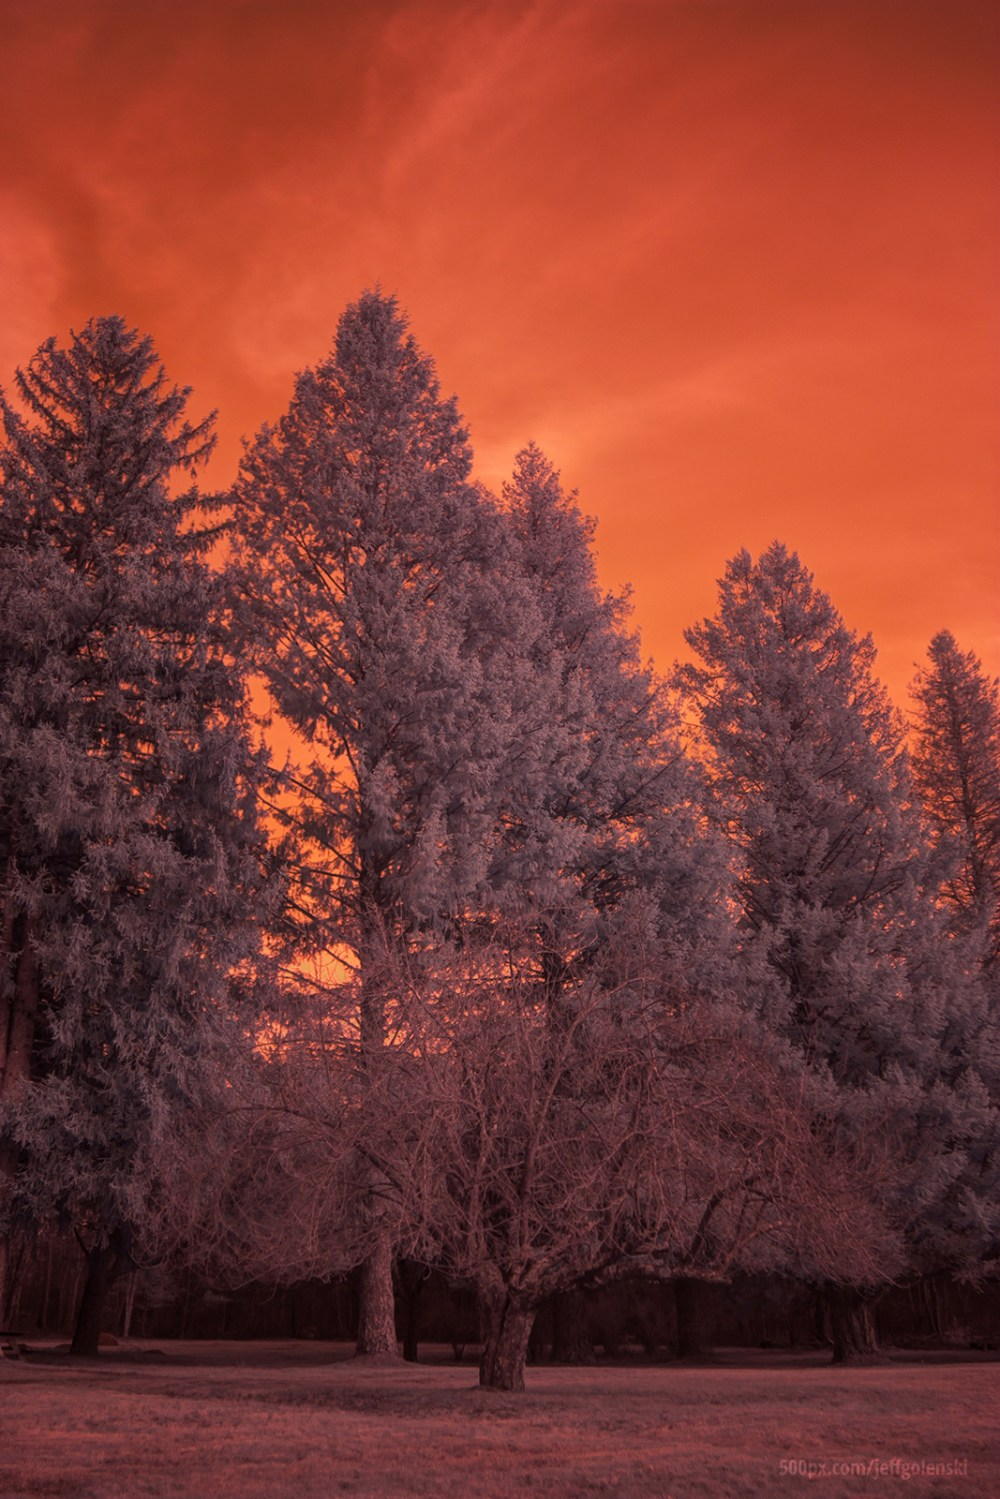 Infrared Photo. Freetown State Forest, Fall River, Massachusetts